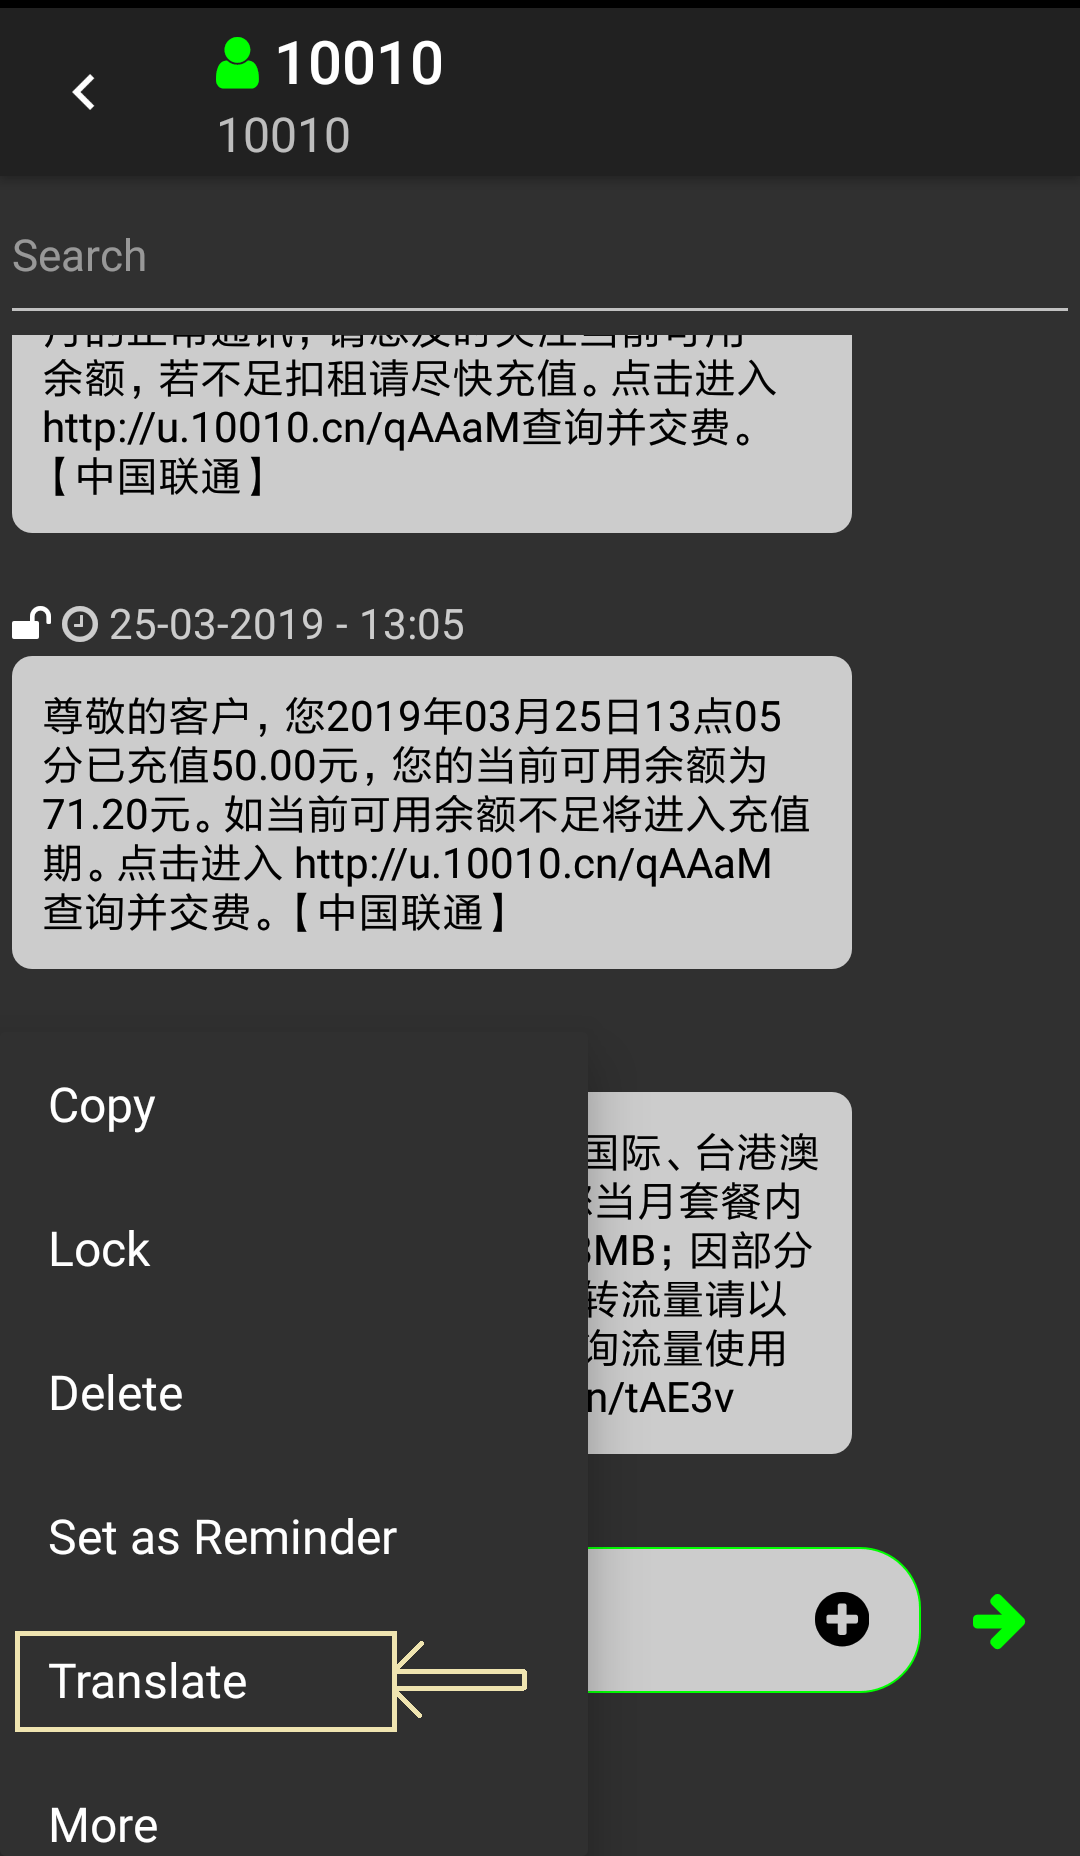 SMS Messaging App with Translation - GalaxySofts